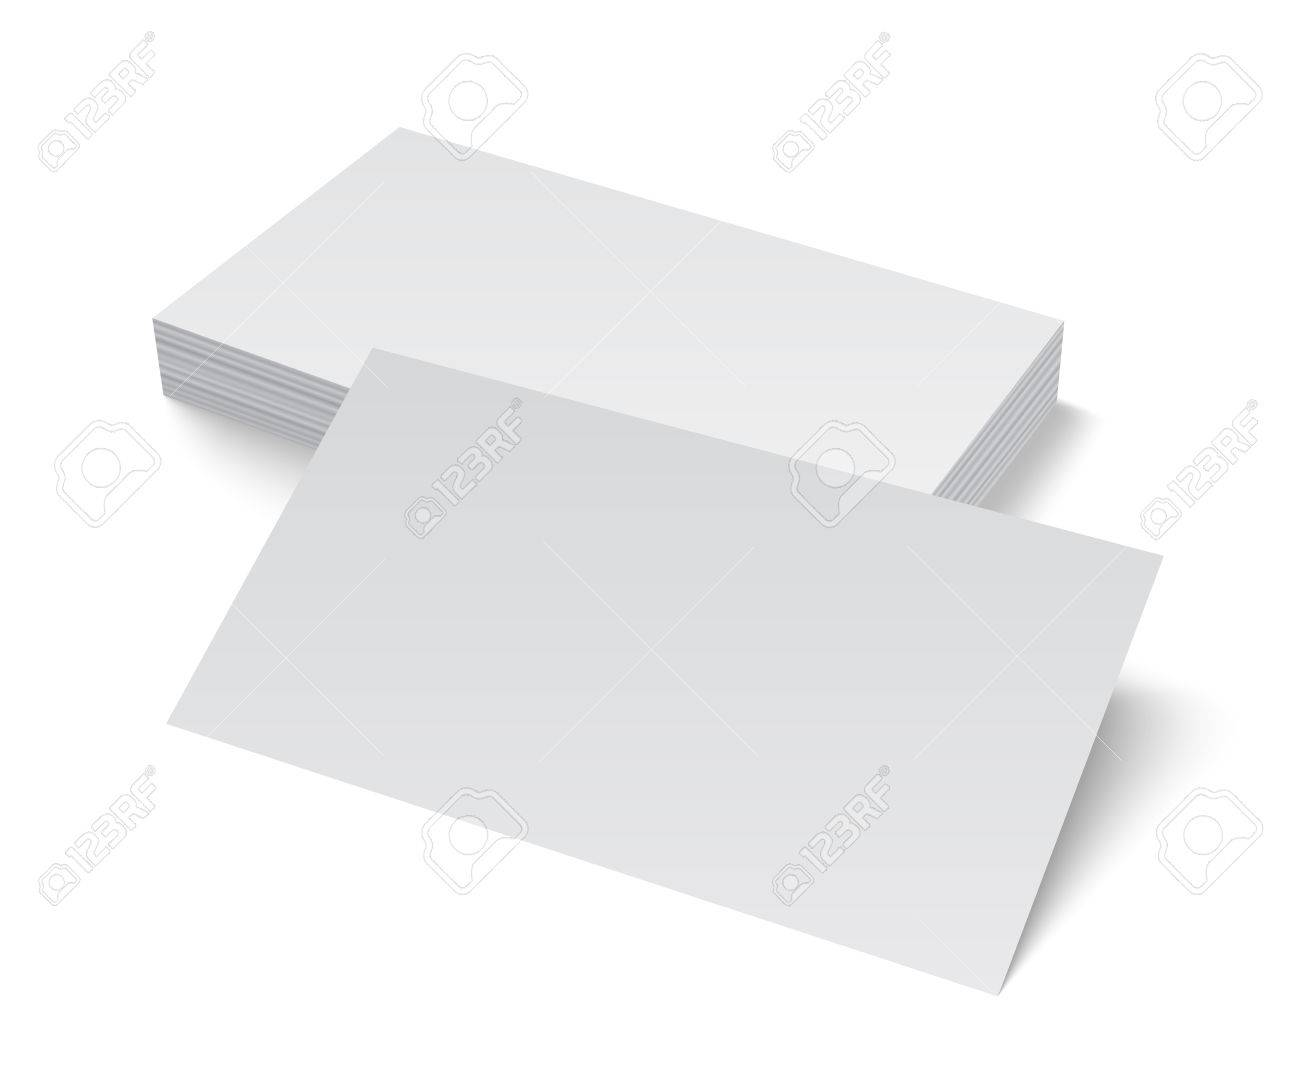 Stack of blank empty business card isolated on white background stack of blank empty business card isolated on white background with soft shadows vector illustration reheart Images